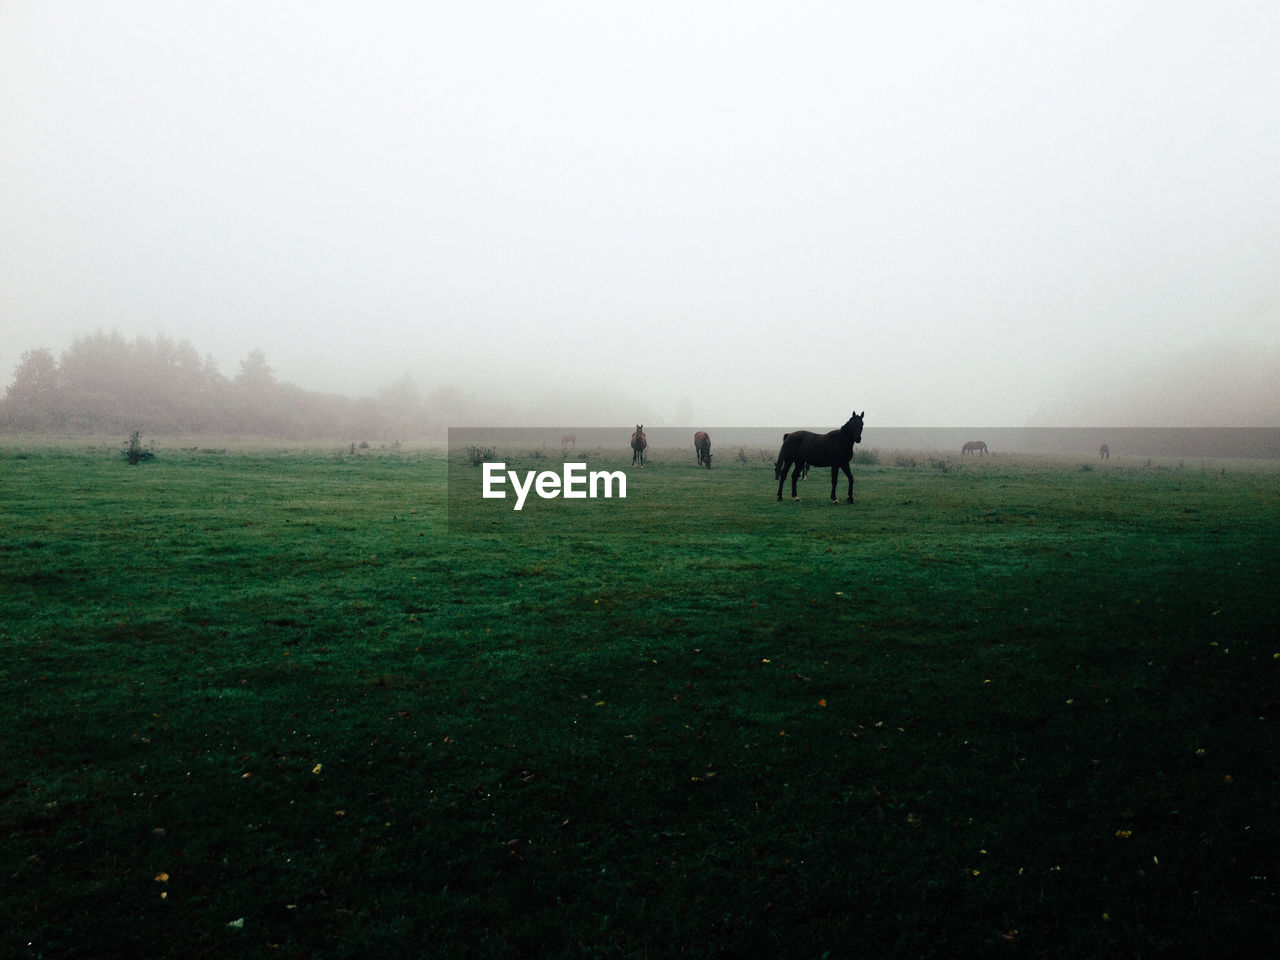 Scenic view of horses on grassy field in foggy weather